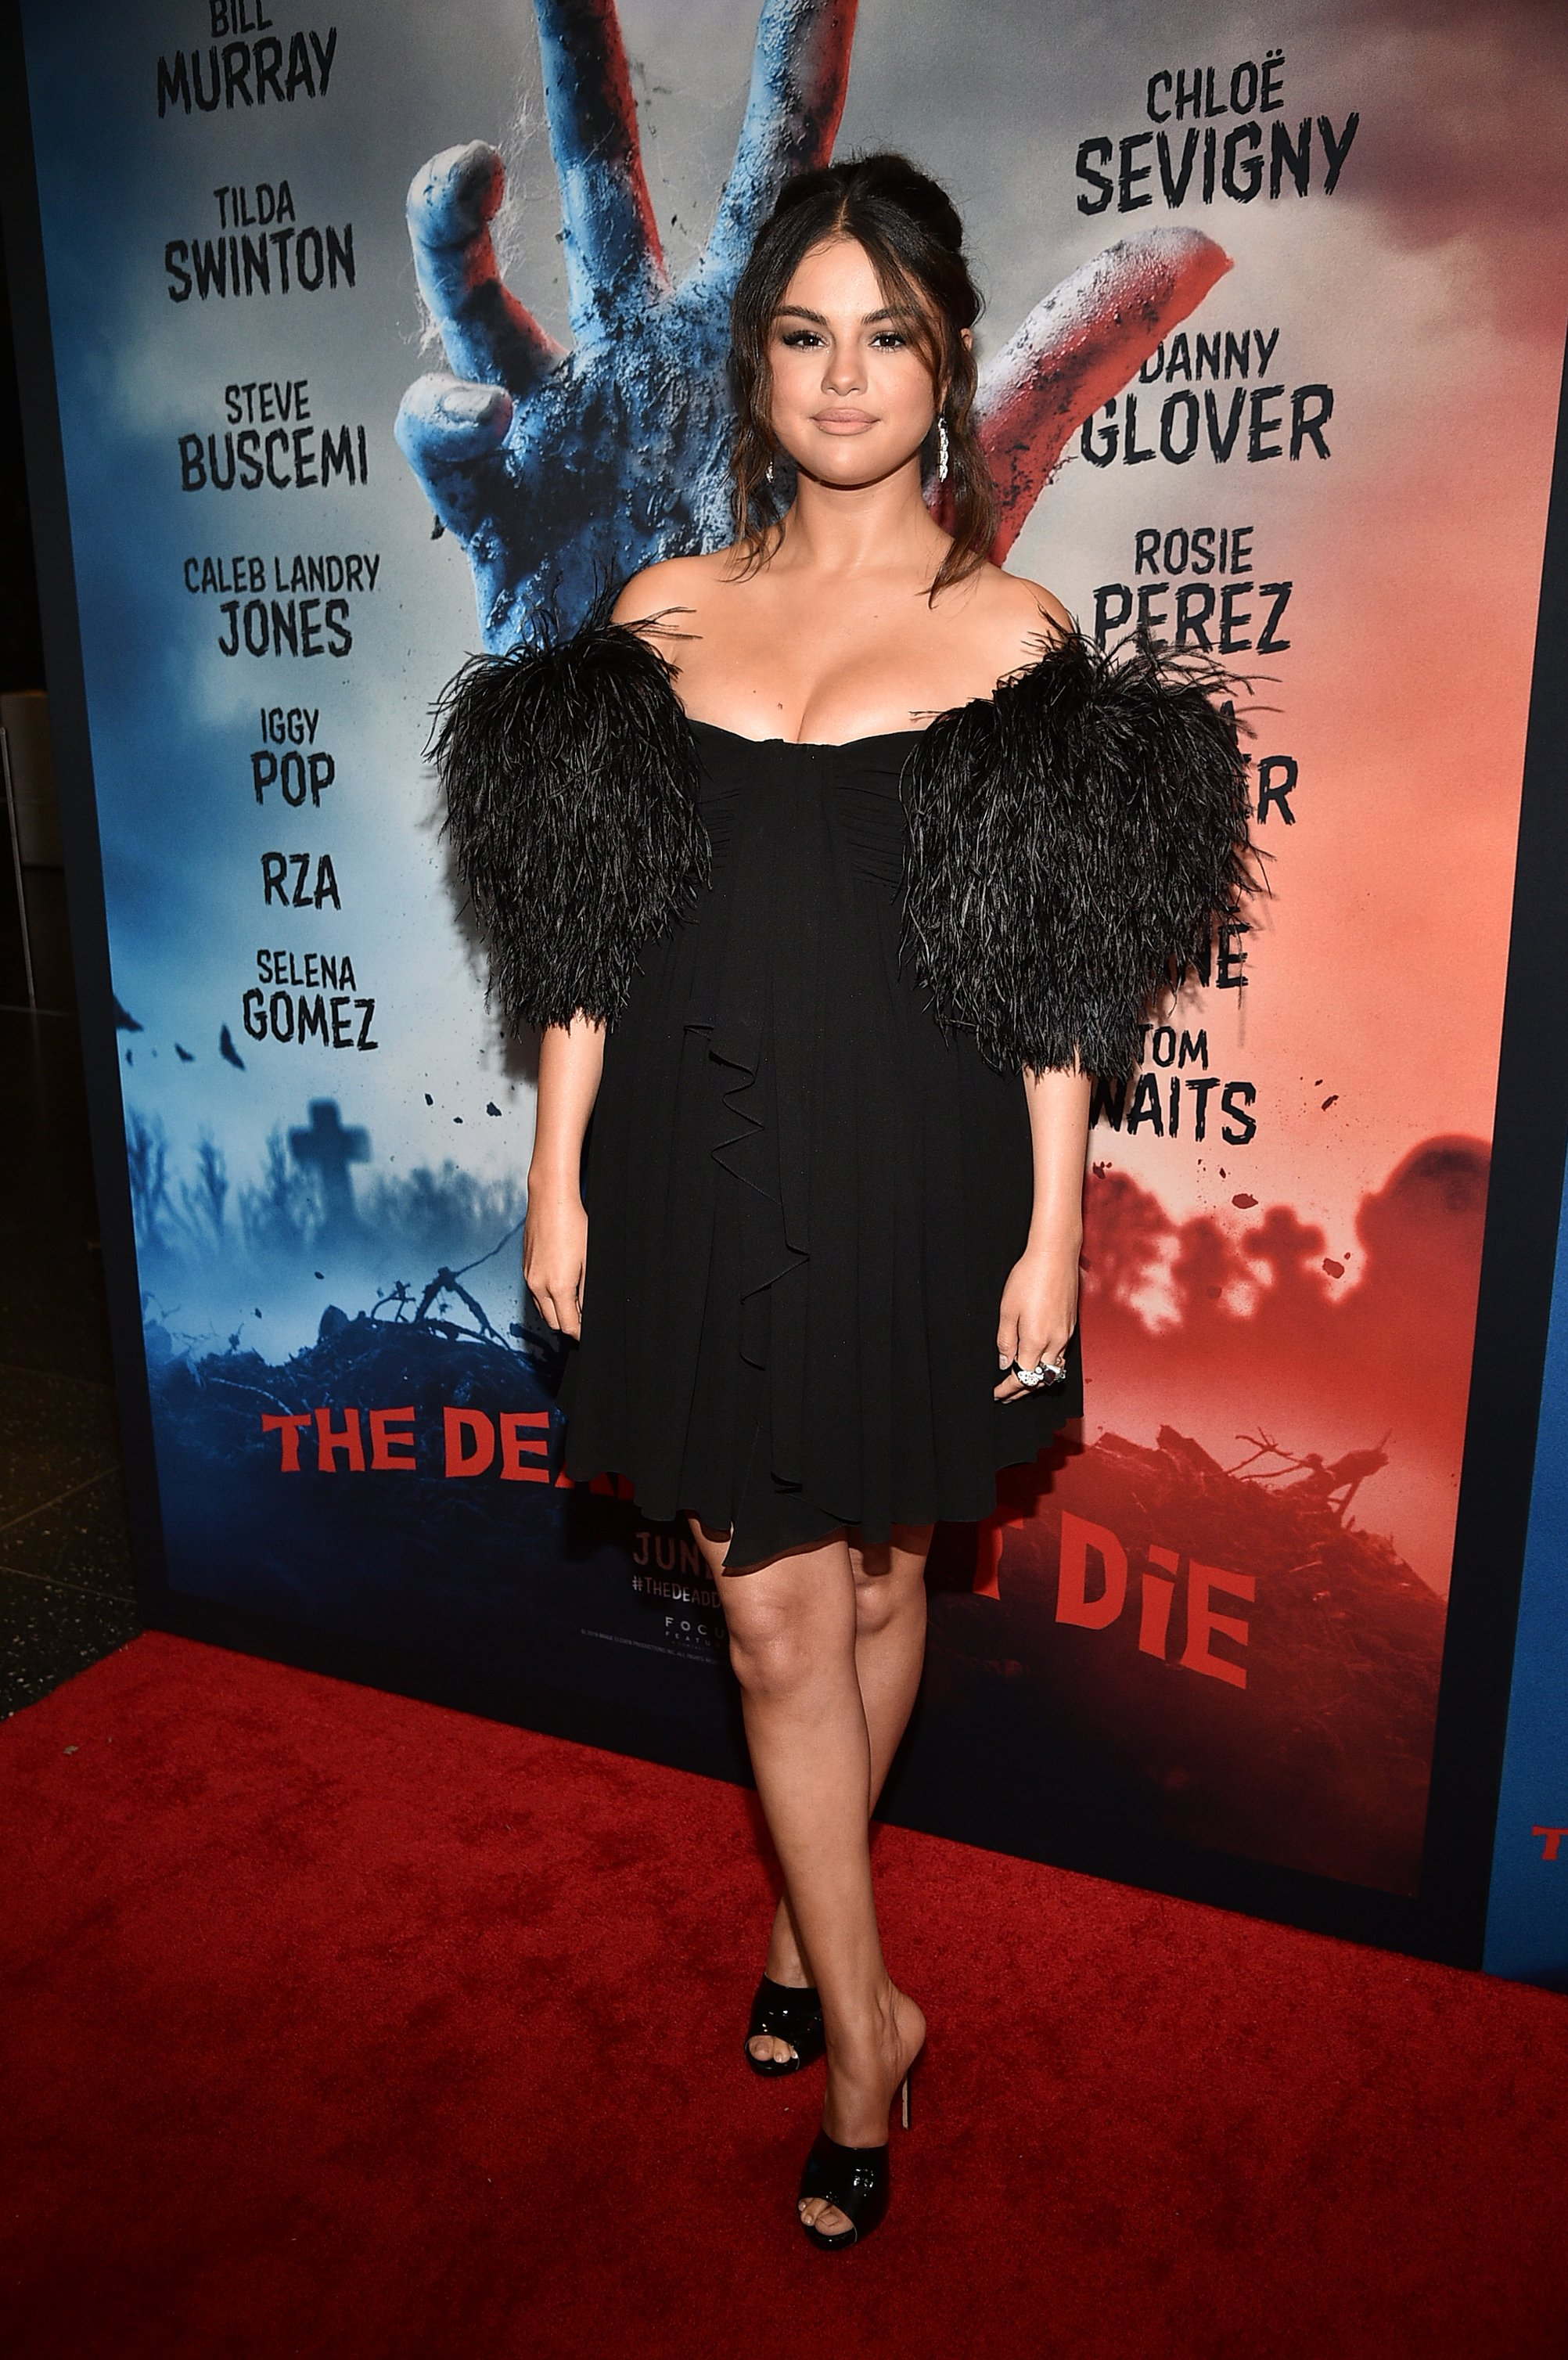 """Selena Gomez attends """"The Dead Don't Die"""" New York Premiere at Museum of Modern Art on June 10, 2019 in New York City. (Photo by Theo Wargo/Getty Images)"""